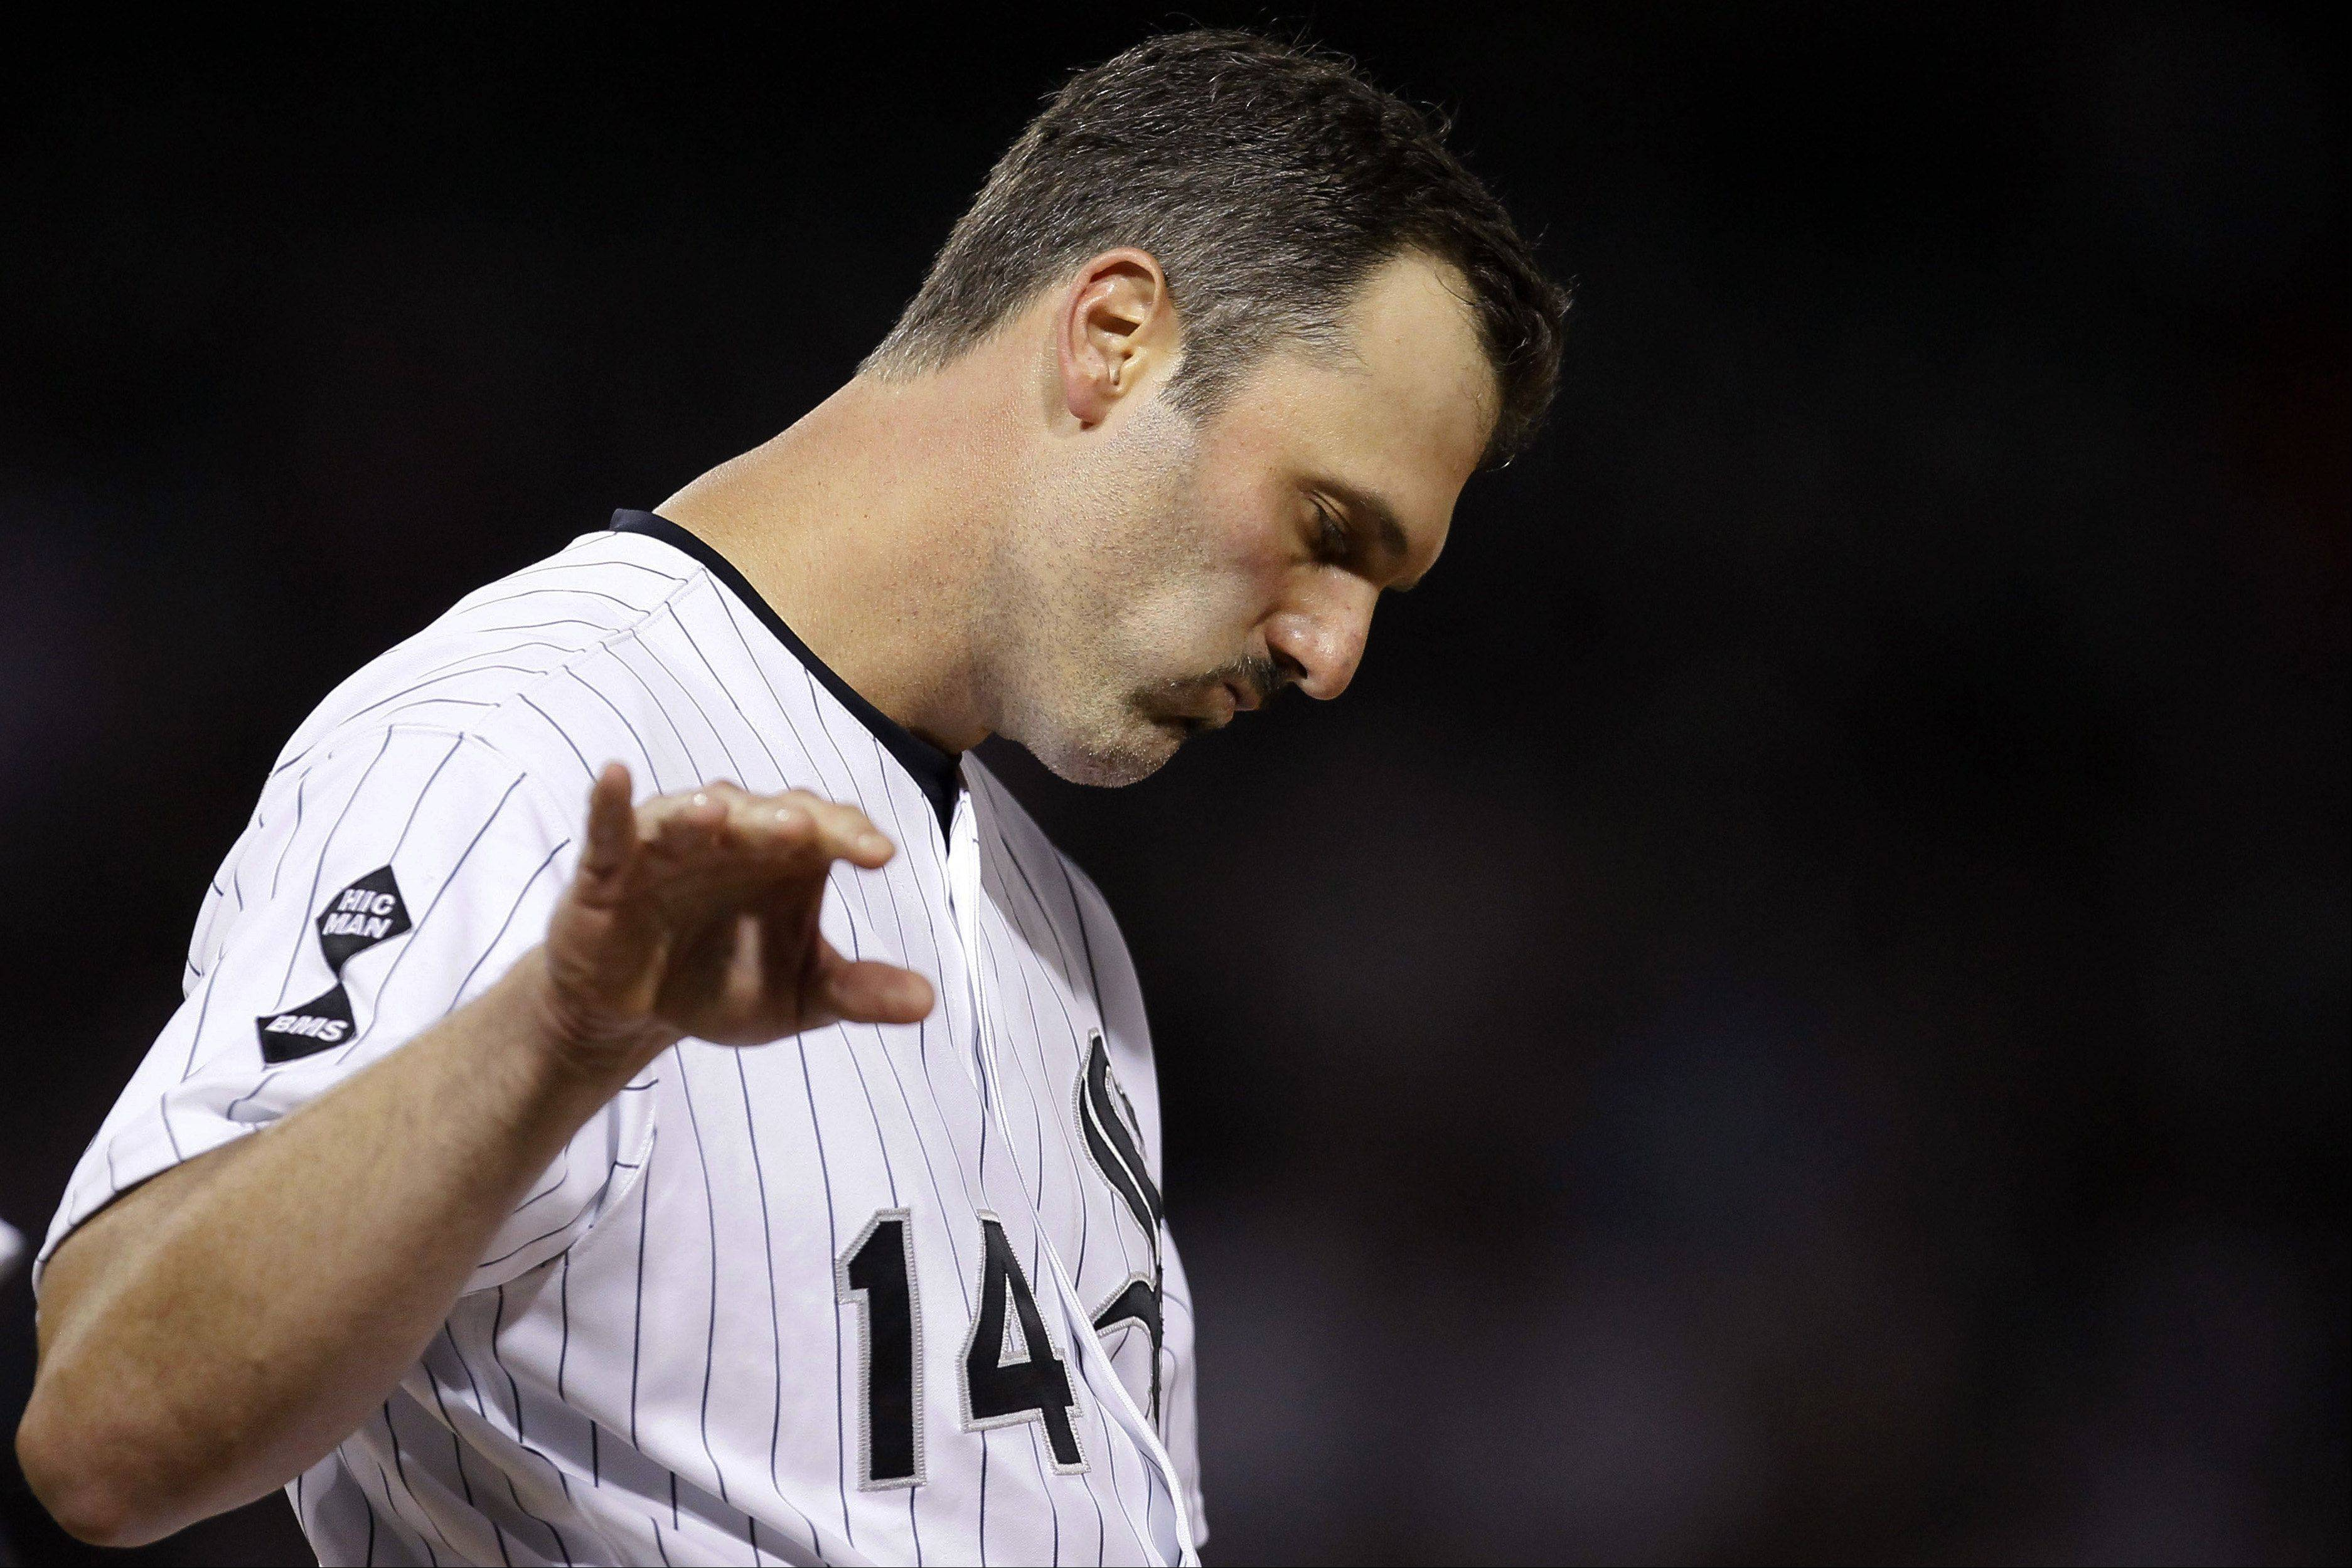 White Sox first baseman Paul Konerko reacts Tuesday after grounding out on a pitch by the Detroit Tigers' Joaquin Benoit to end the eighth inning at U.S. Cellular Field.